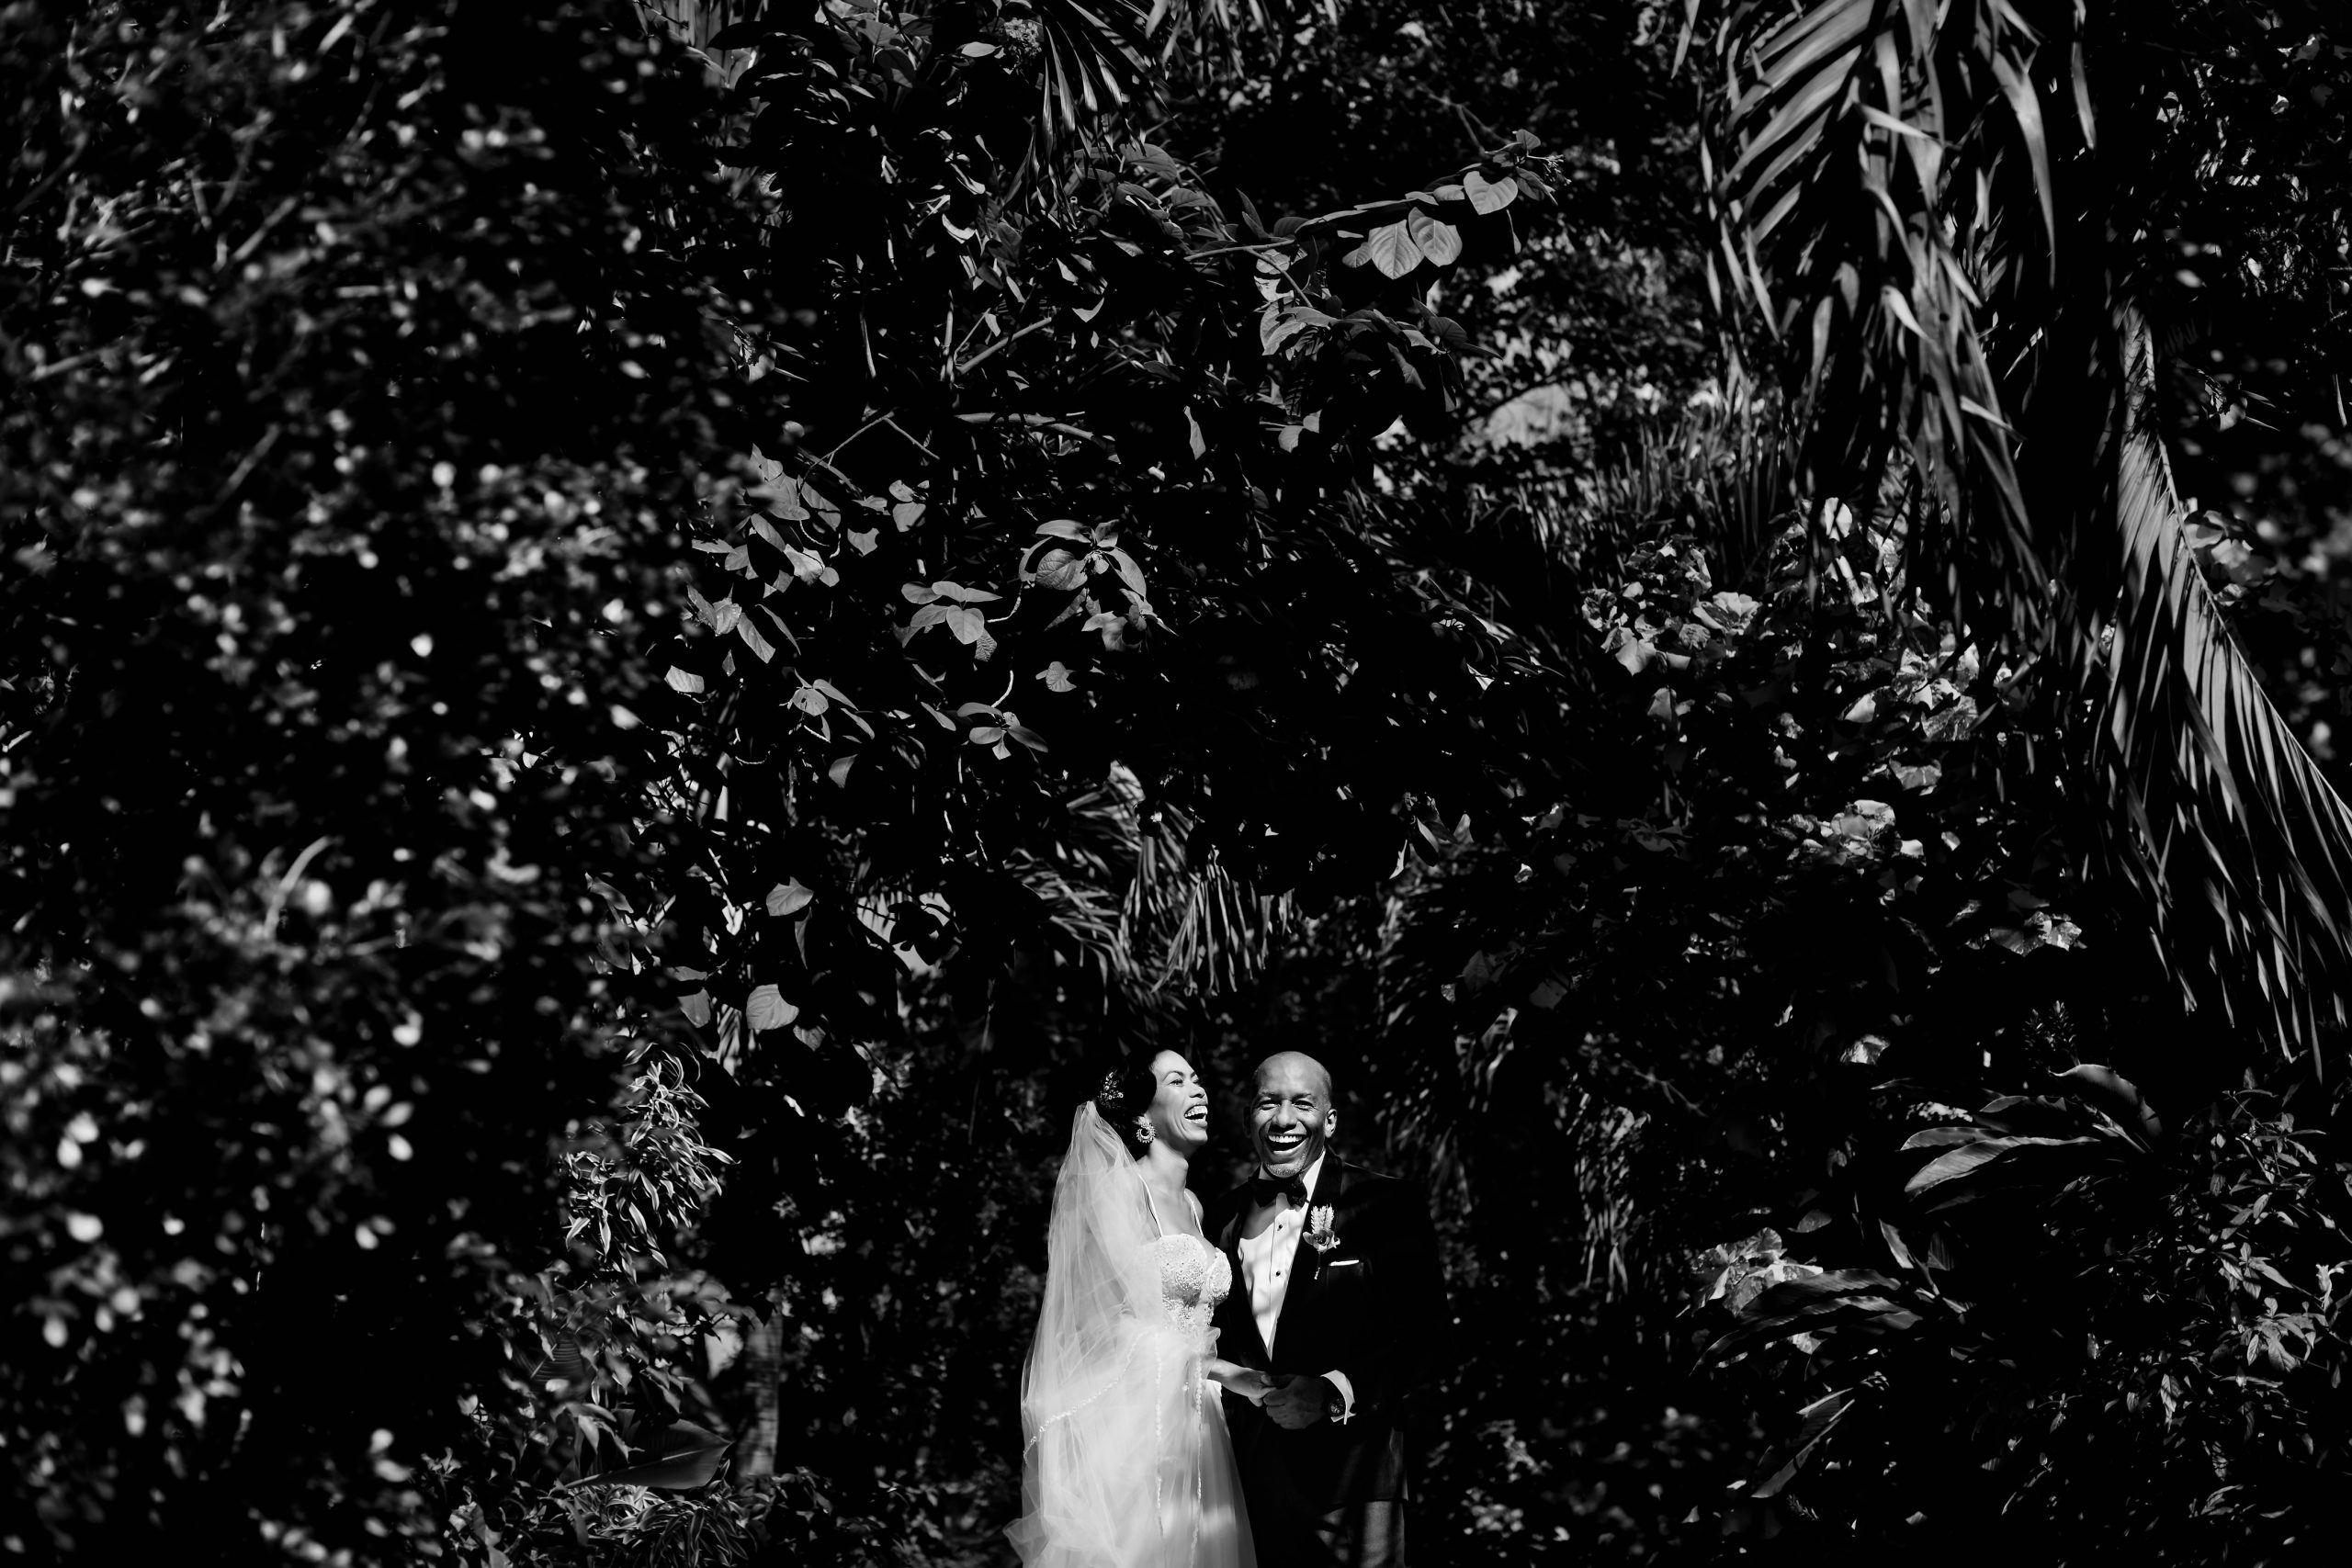 Bride and groom laugh together among tropical vegetation.